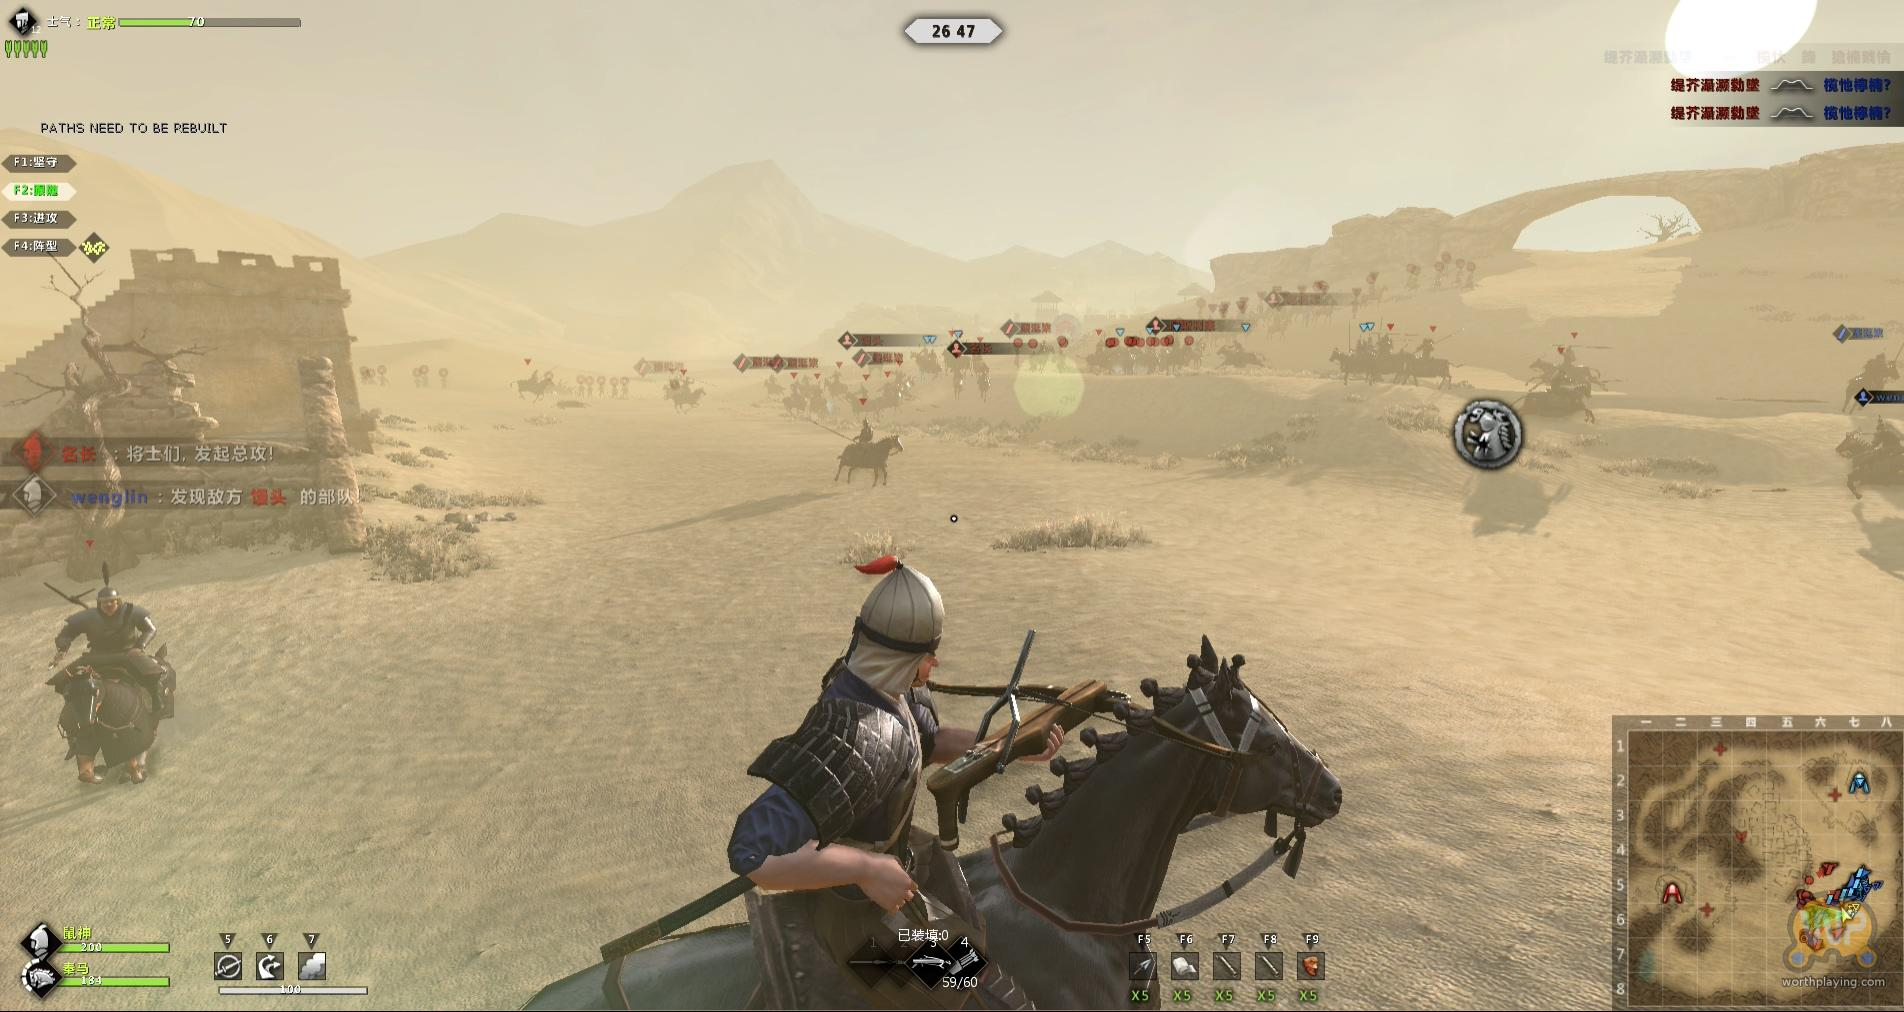 Tiger Knight: Empire War – Steam-Hit angespielt: Total War trifft Dynasty Warriors